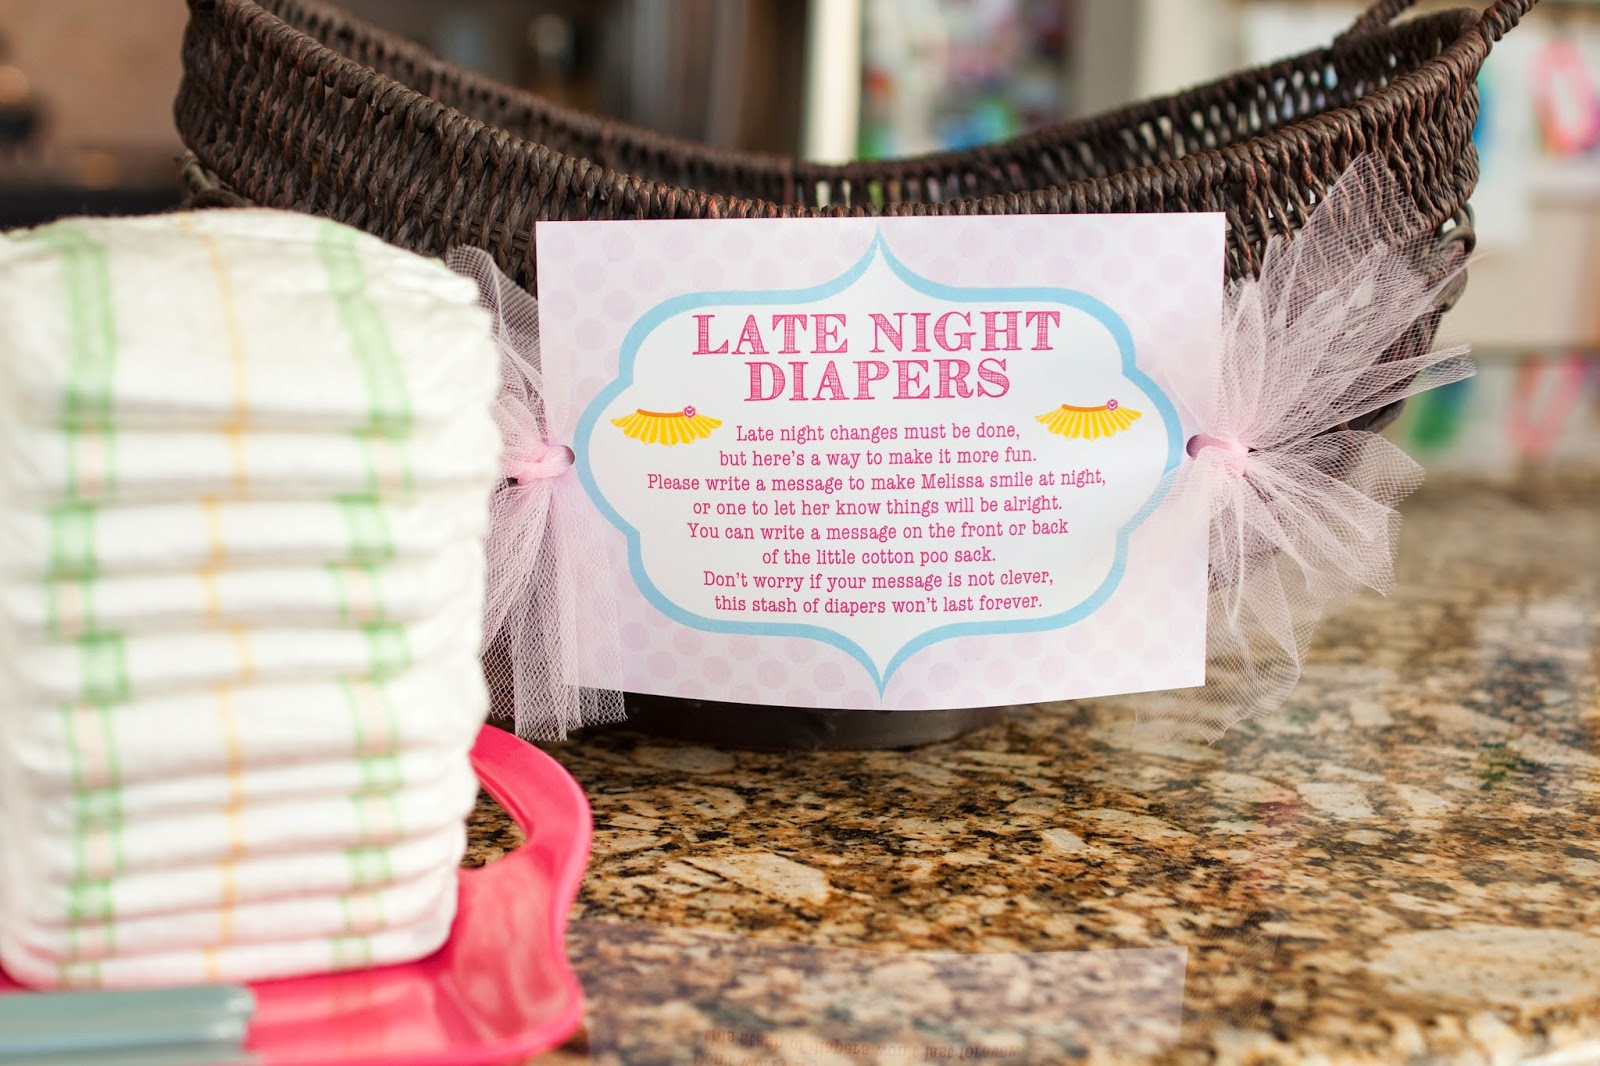 The sweatman family tutu thrilled baby shower details for Baby shower diaper decoration game